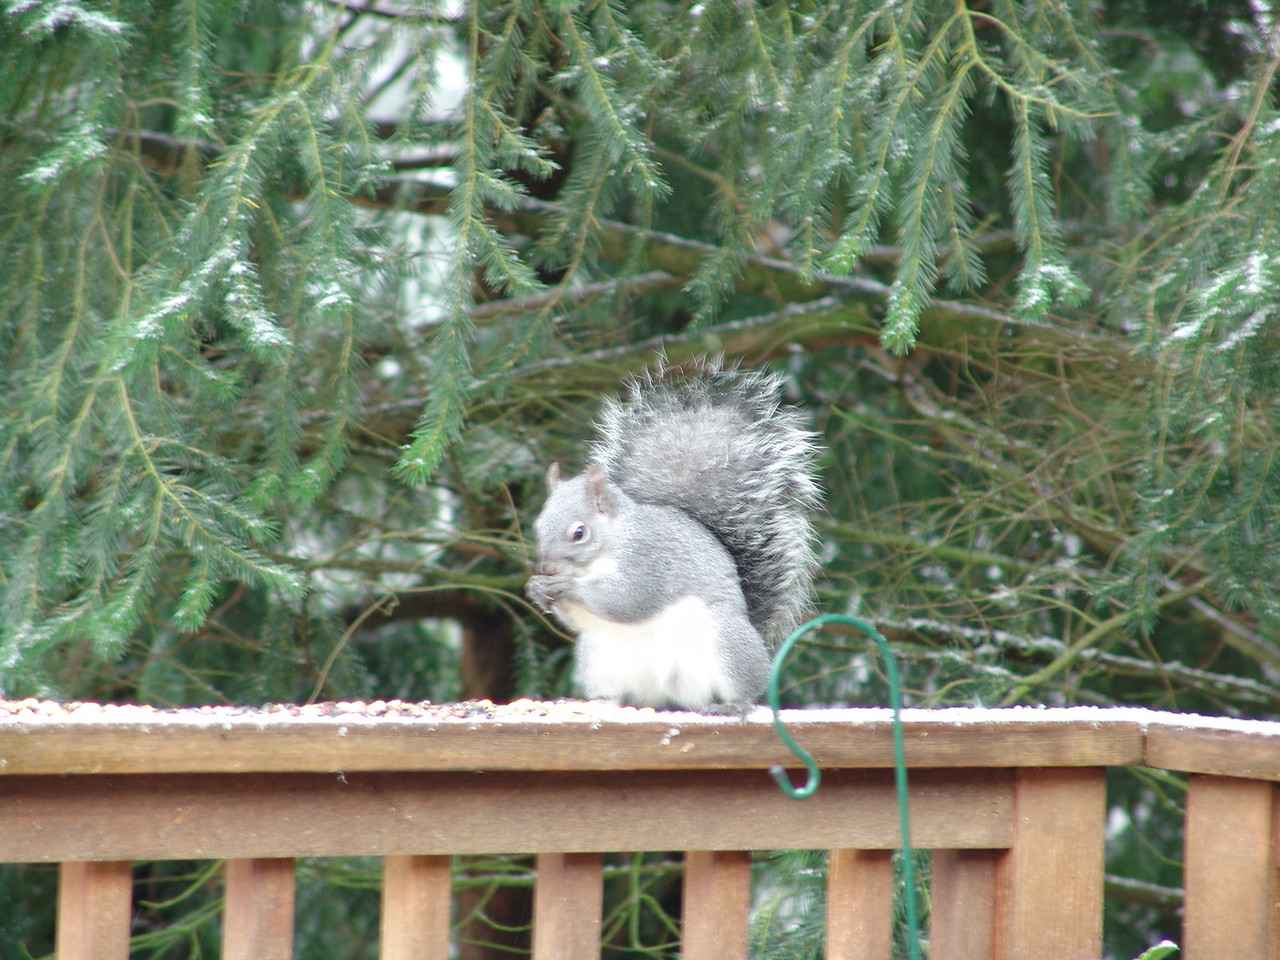 Alvin---a frequent visitor